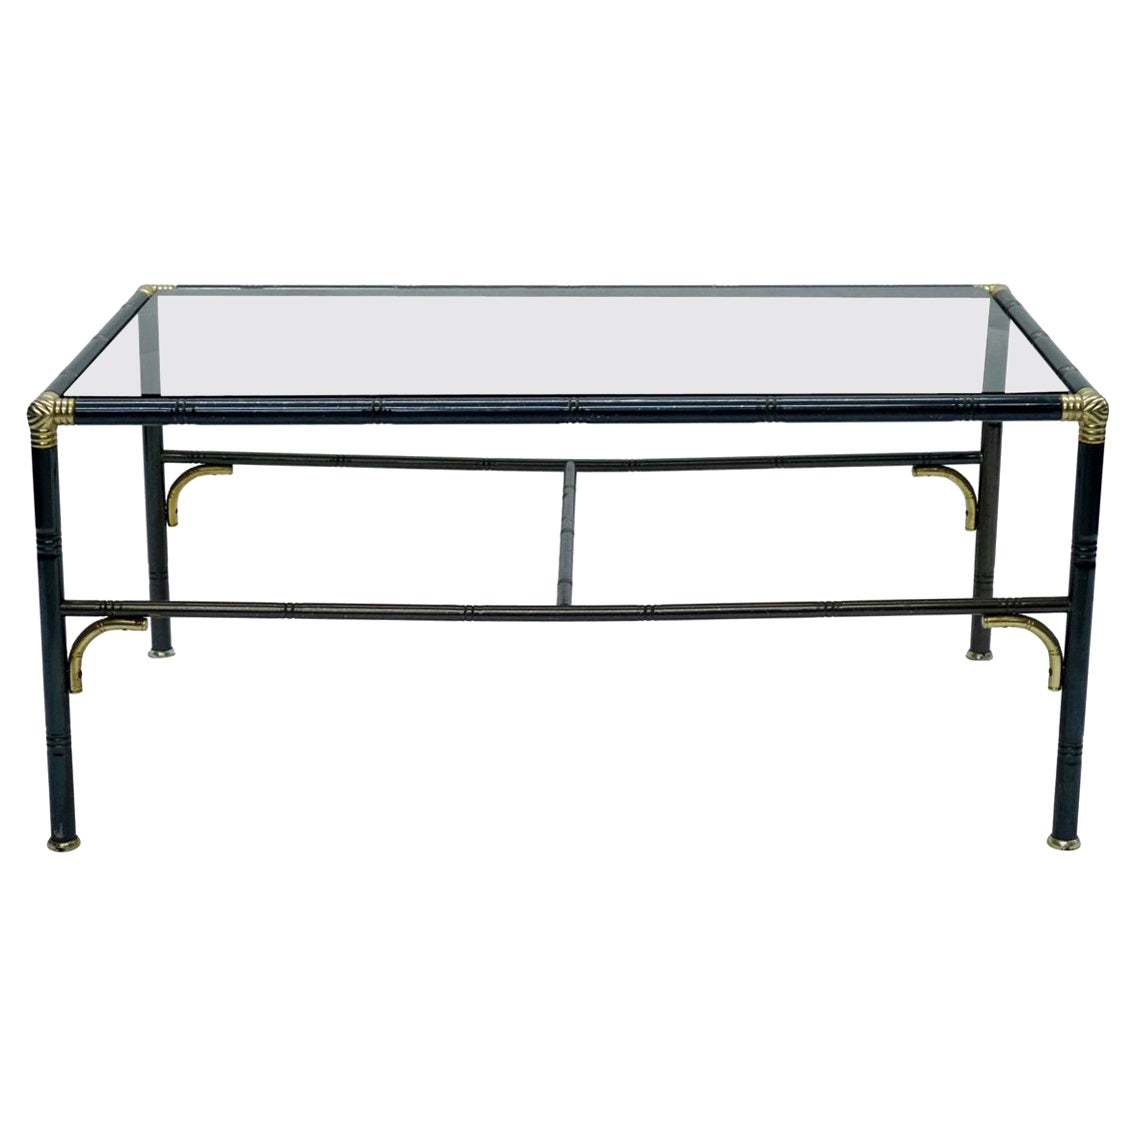 Hollywood Regency Steel and Brass Faux Bamboo Coffee Table, Smoked Glass Top